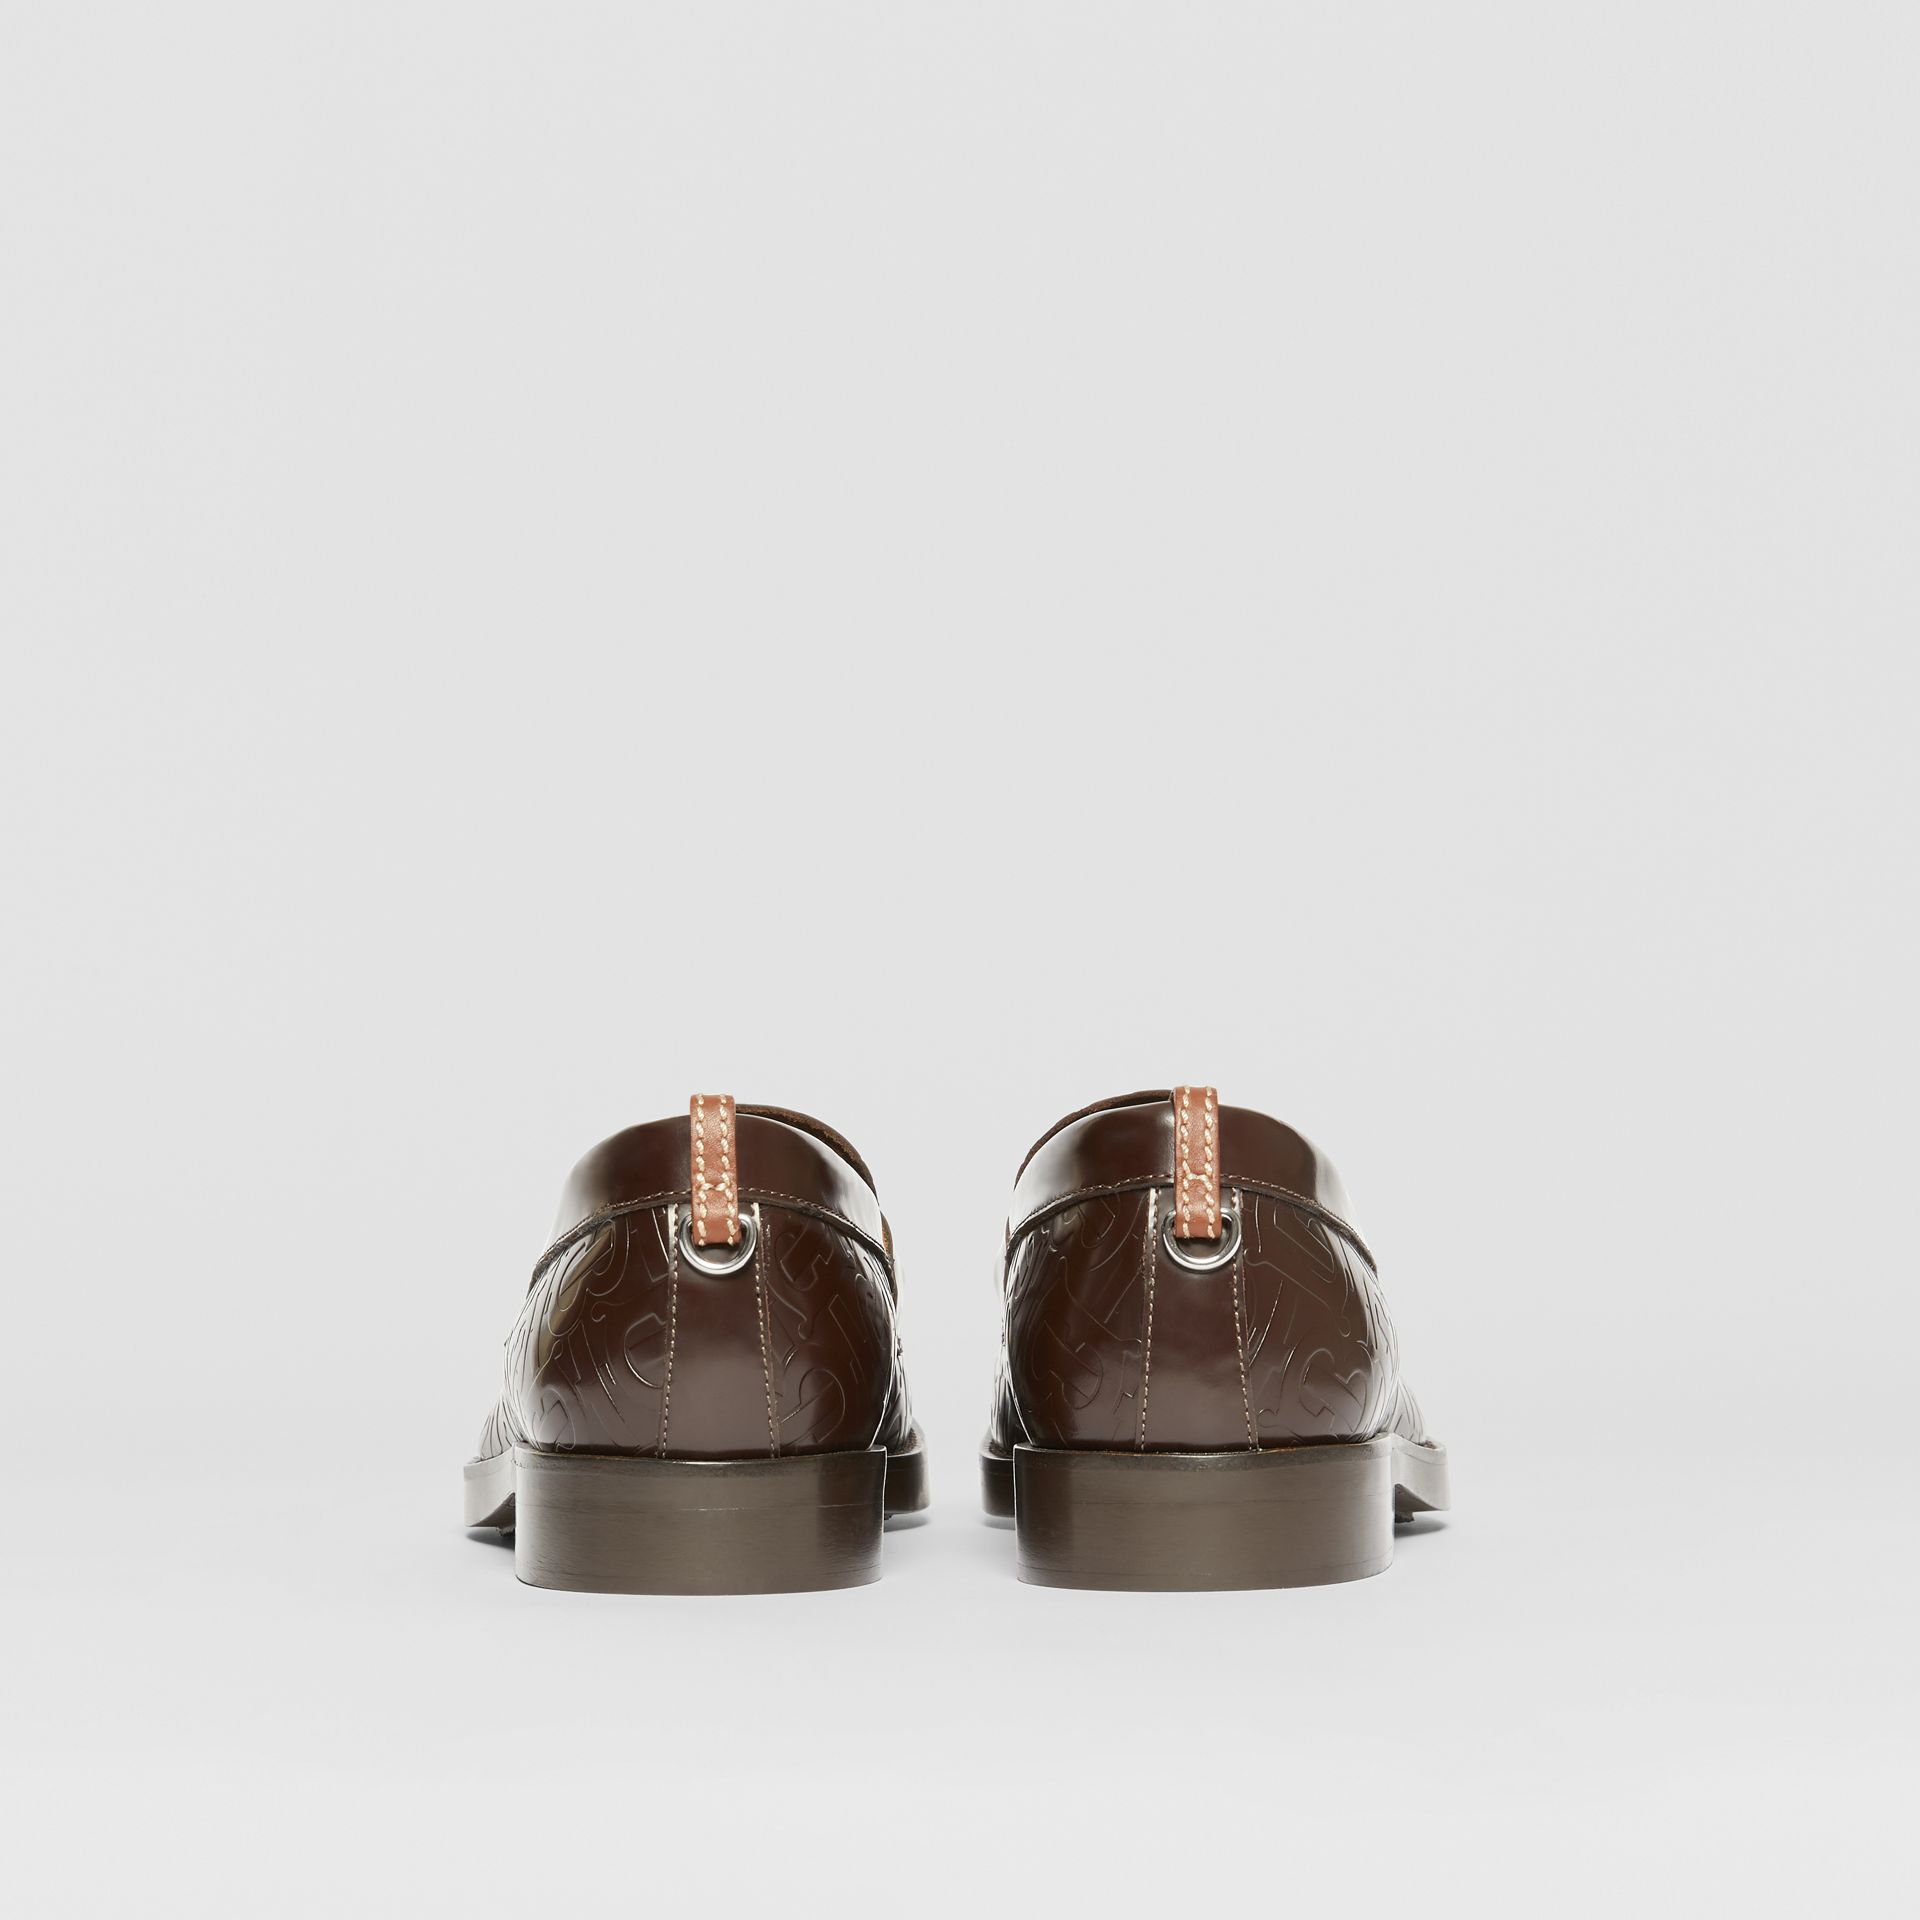 D-ring Detail Monogram Leather Loafers in Chocolate - Men | Burberry Canada - gallery image 3